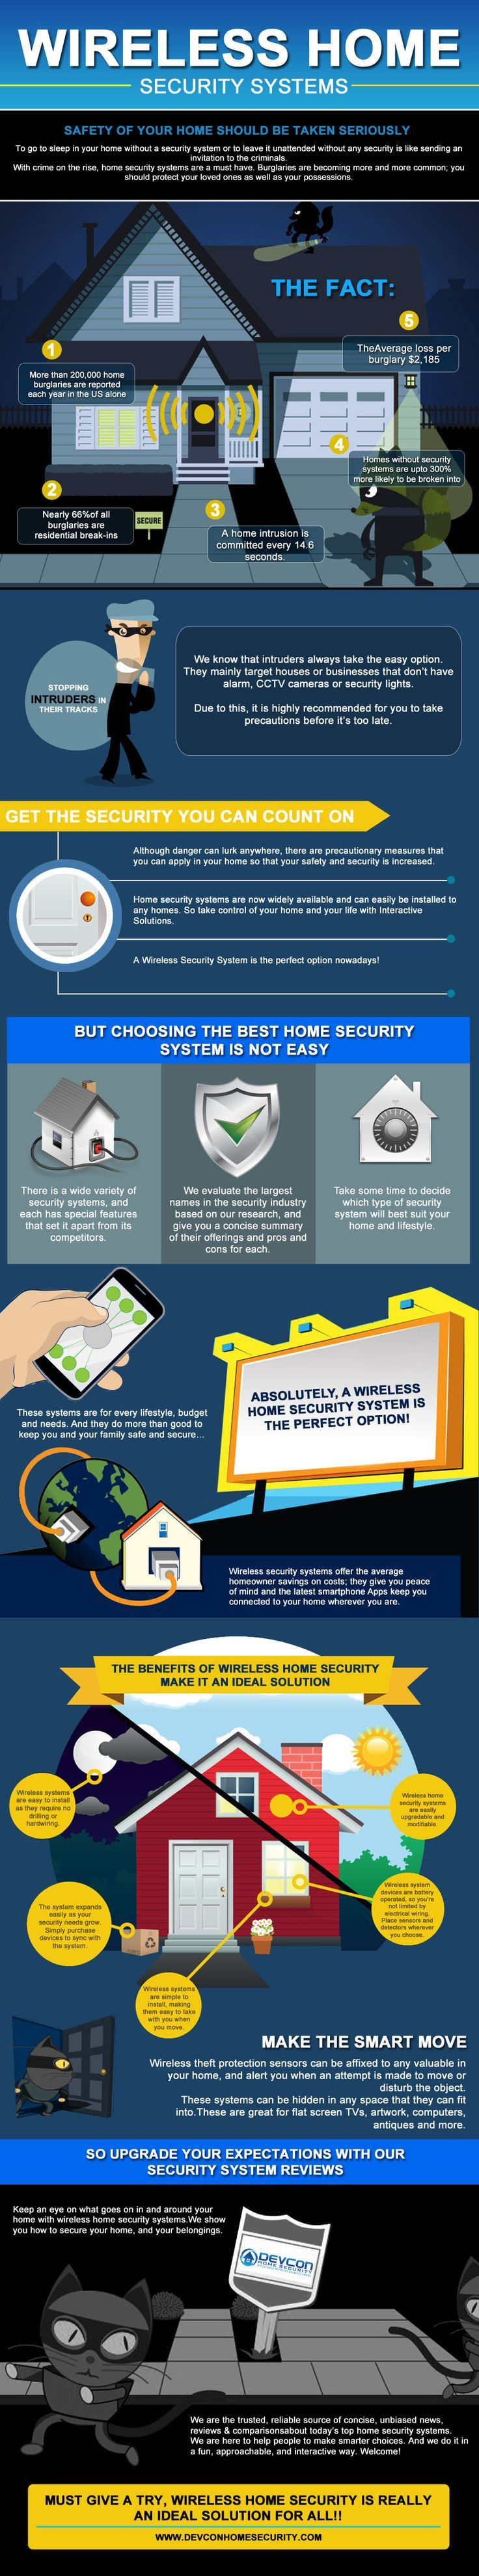 Ultimate Guide To Wireless Home Security Systems